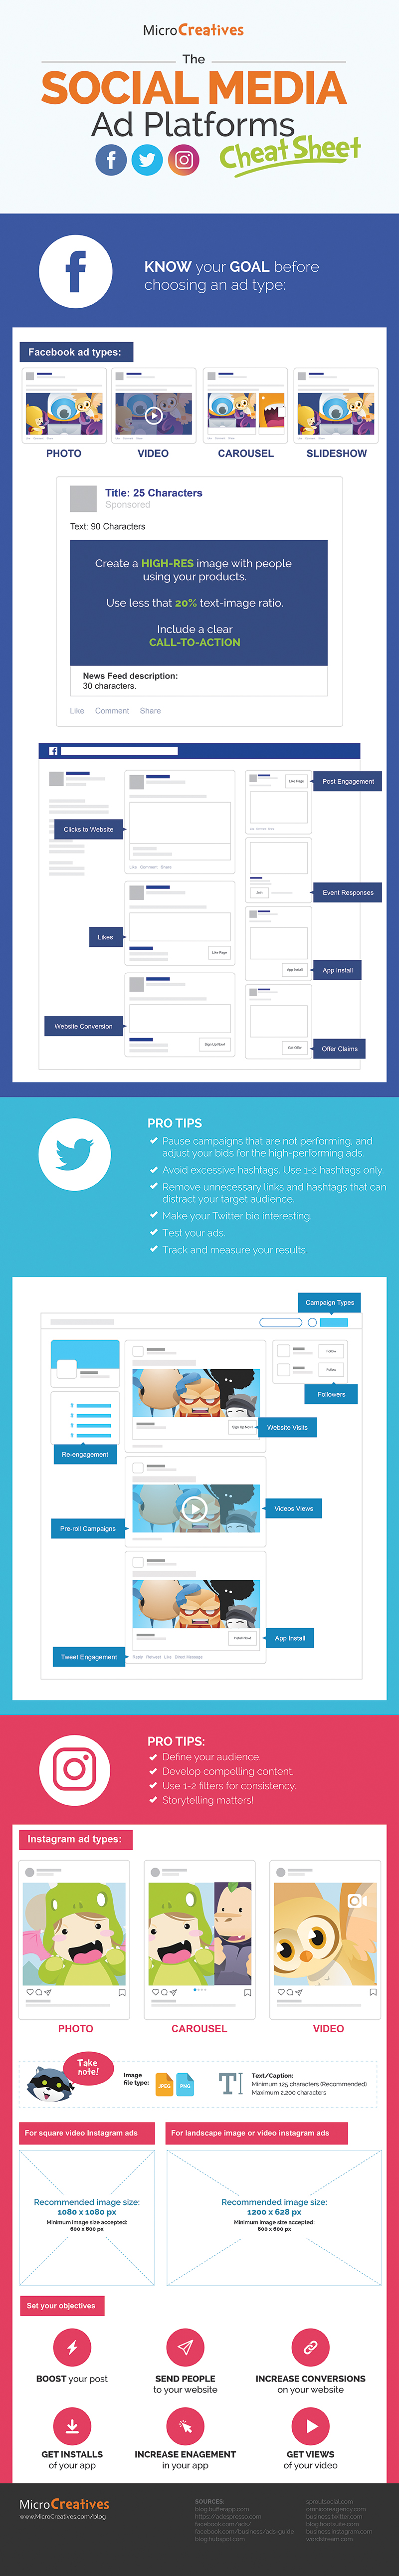 Pro Tips For Your Advertisements On Social Media - Infographic